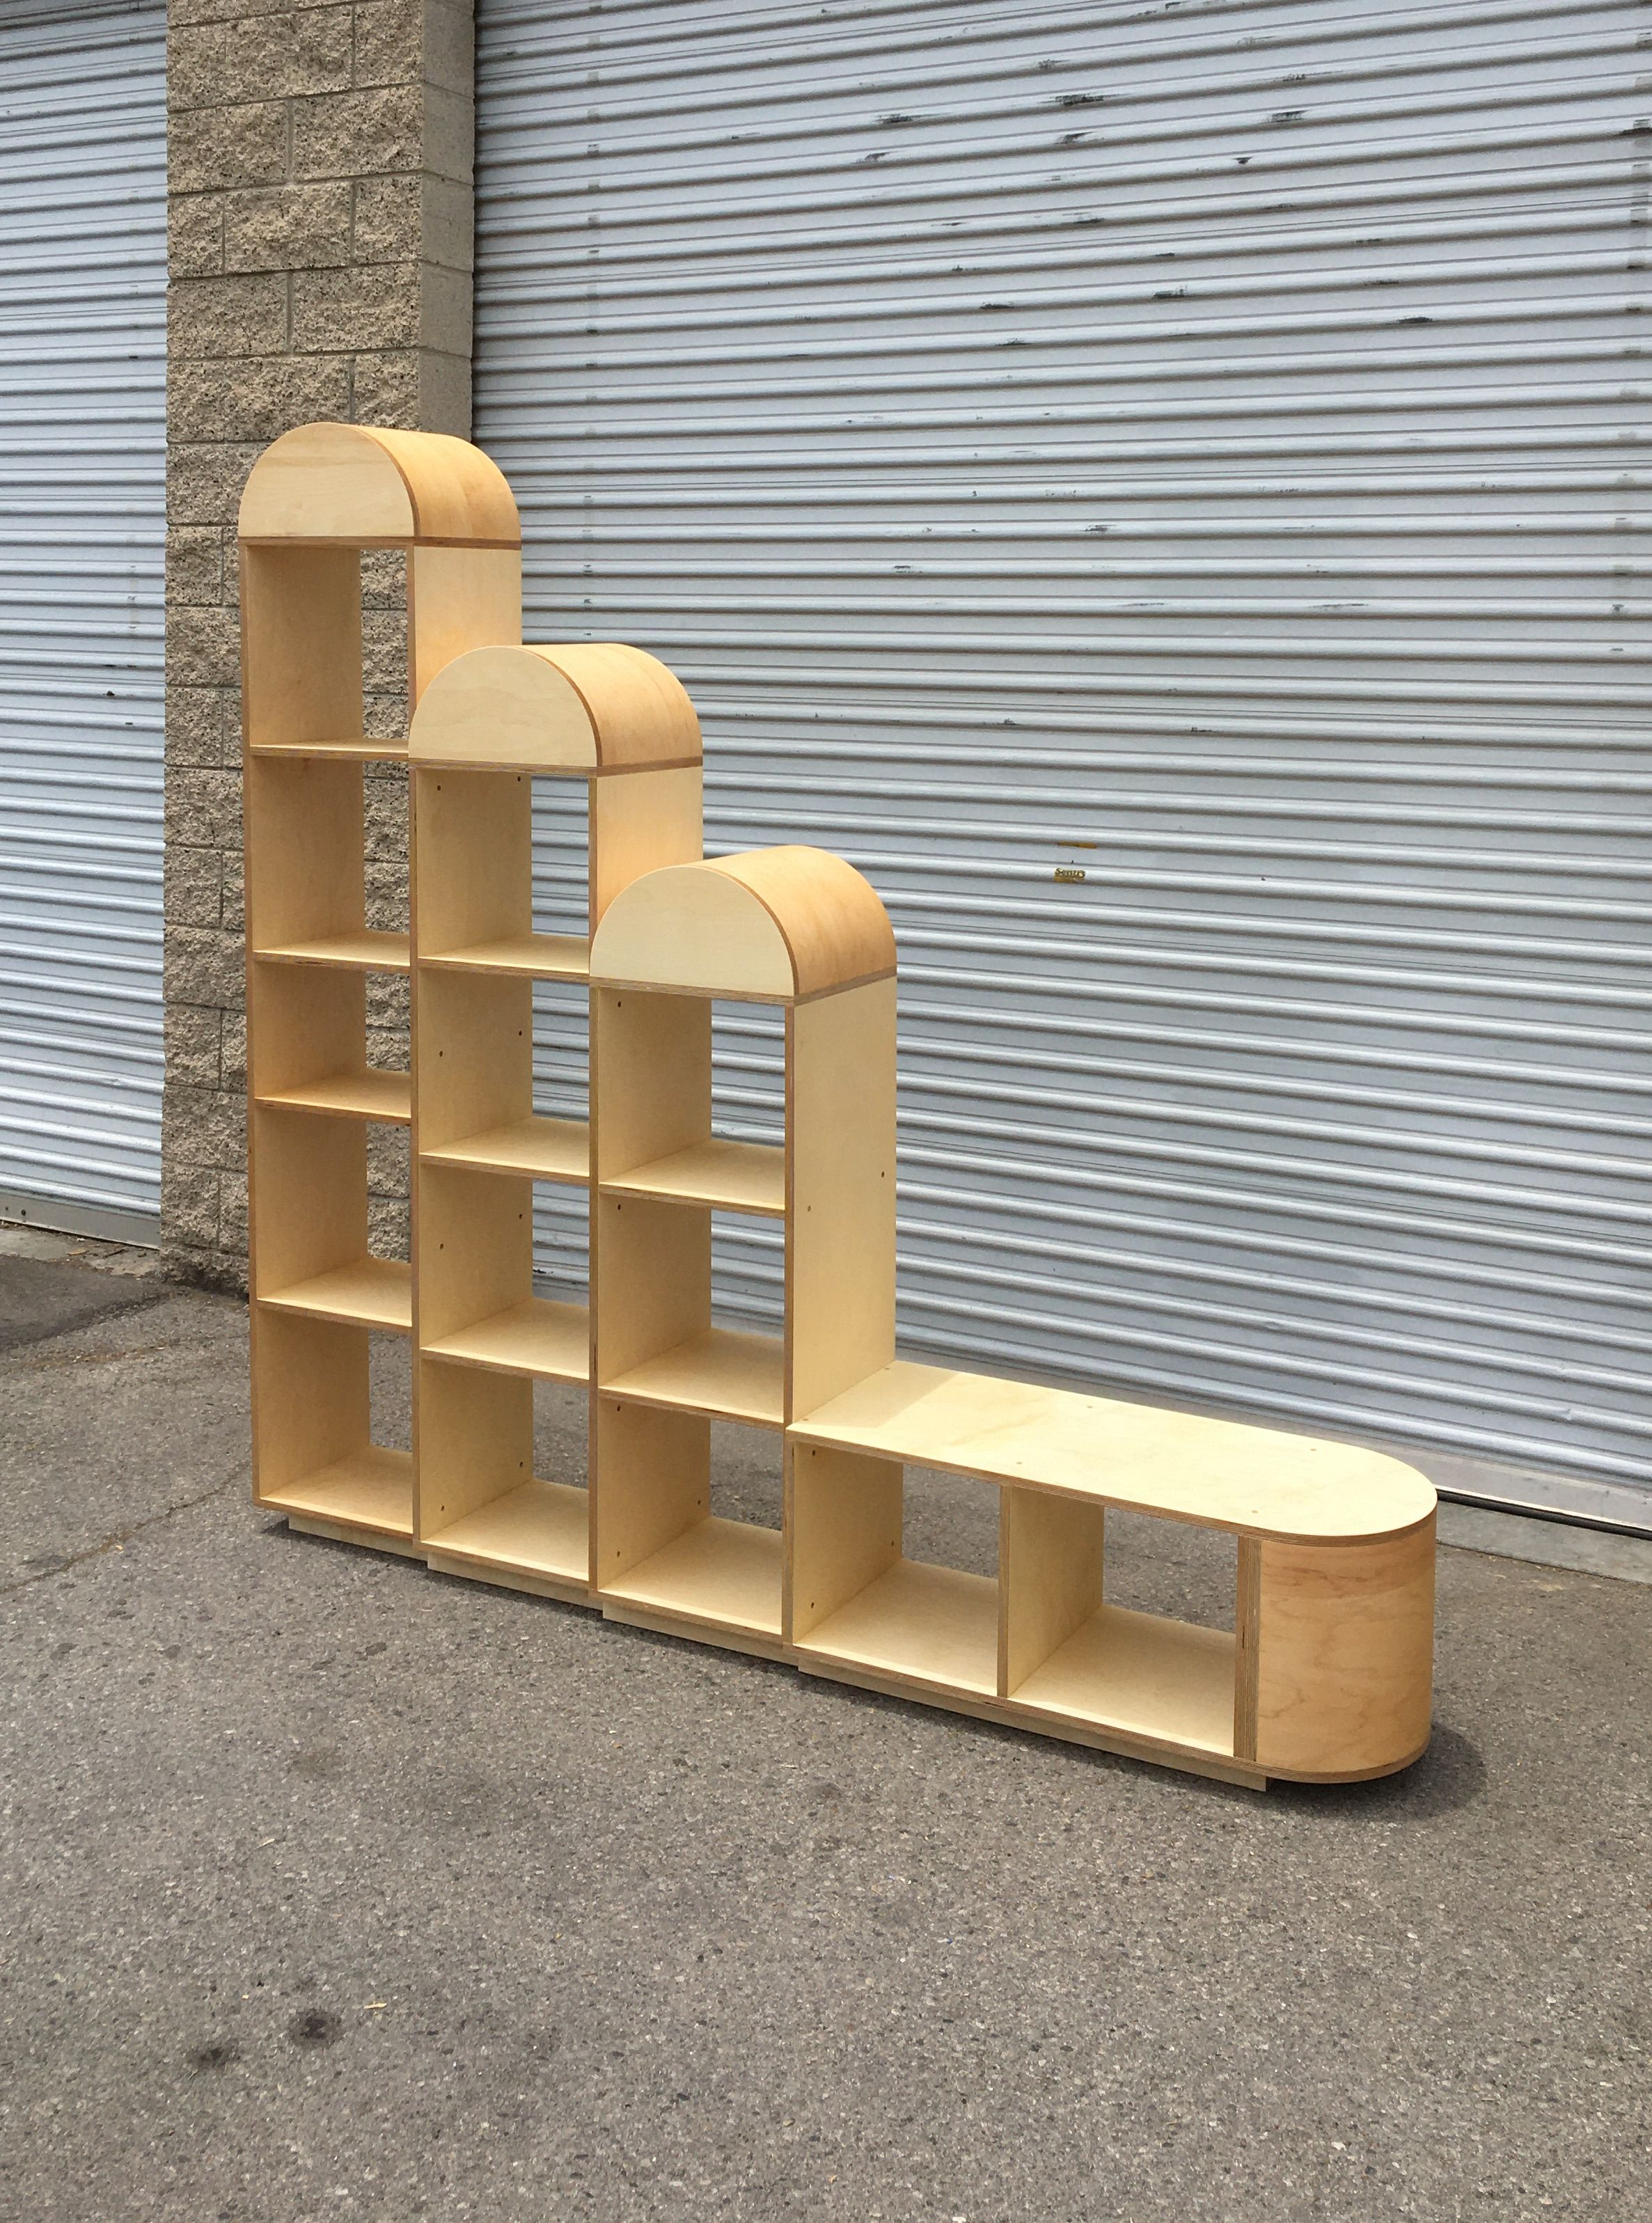 Tiered Tower Bookshelf product image 1